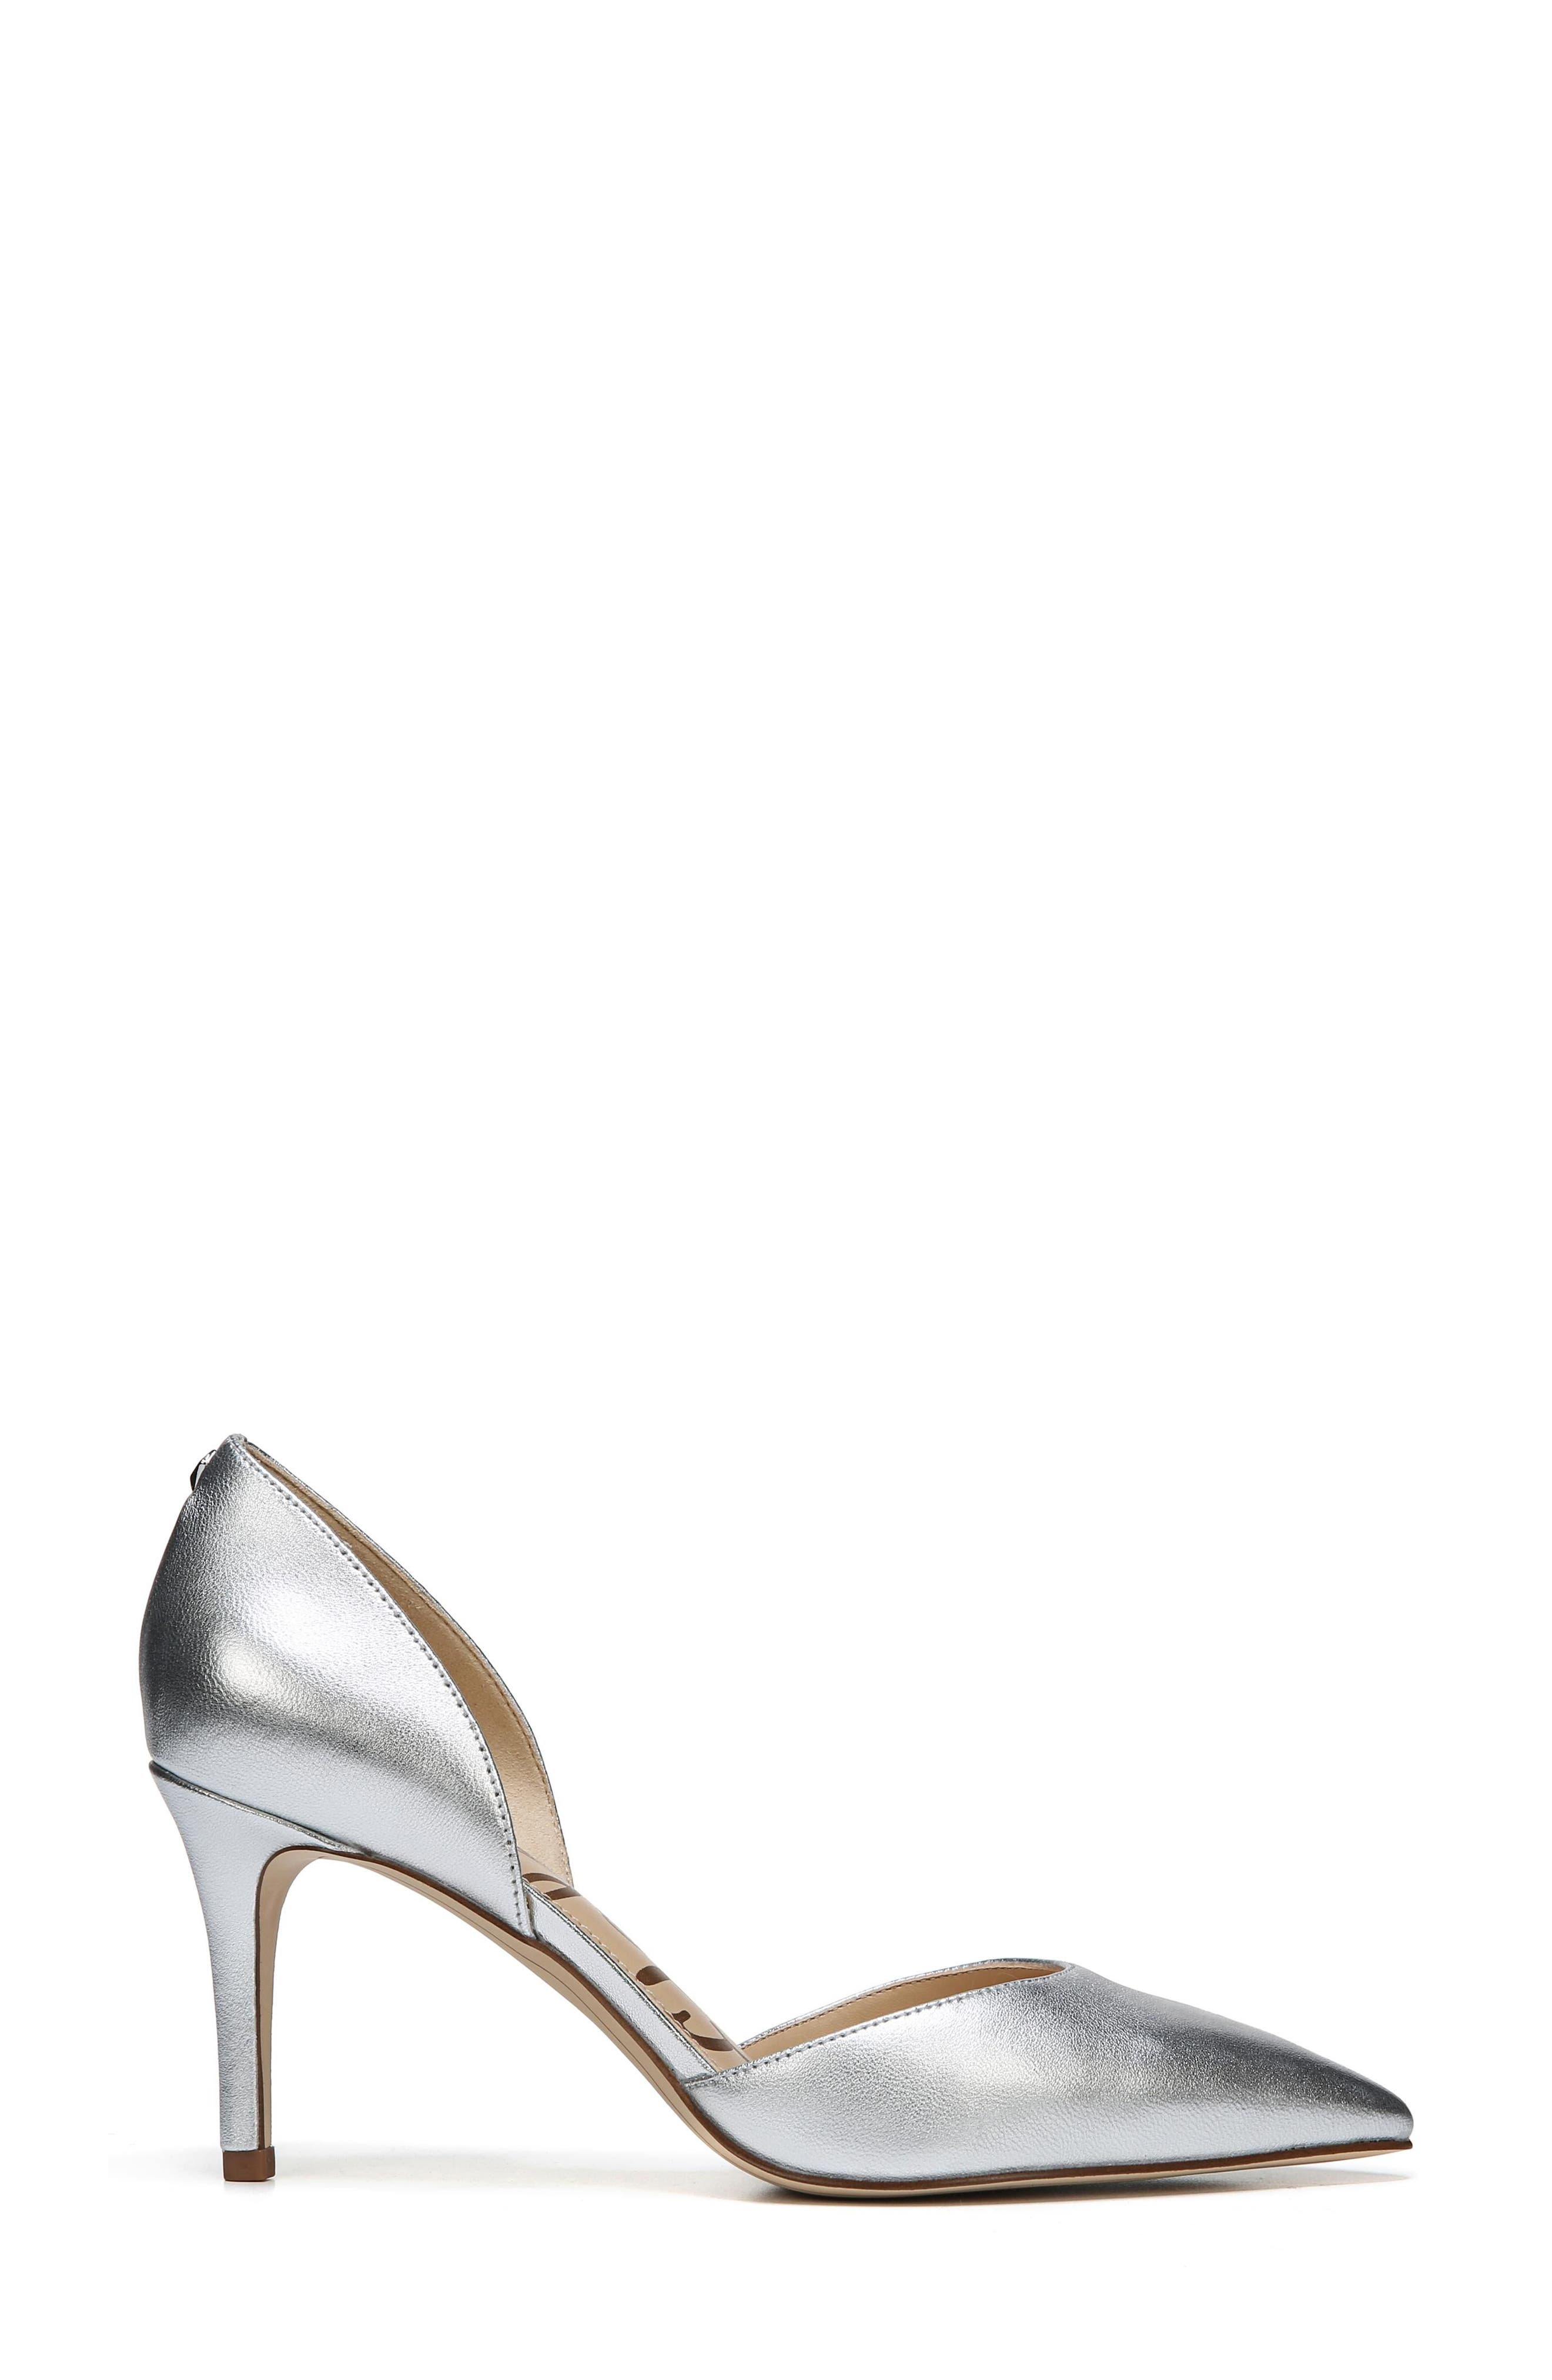 'Telsa' d'Orsay Pointy Toe Pump,                             Alternate thumbnail 3, color,                             Soft Silver Leather